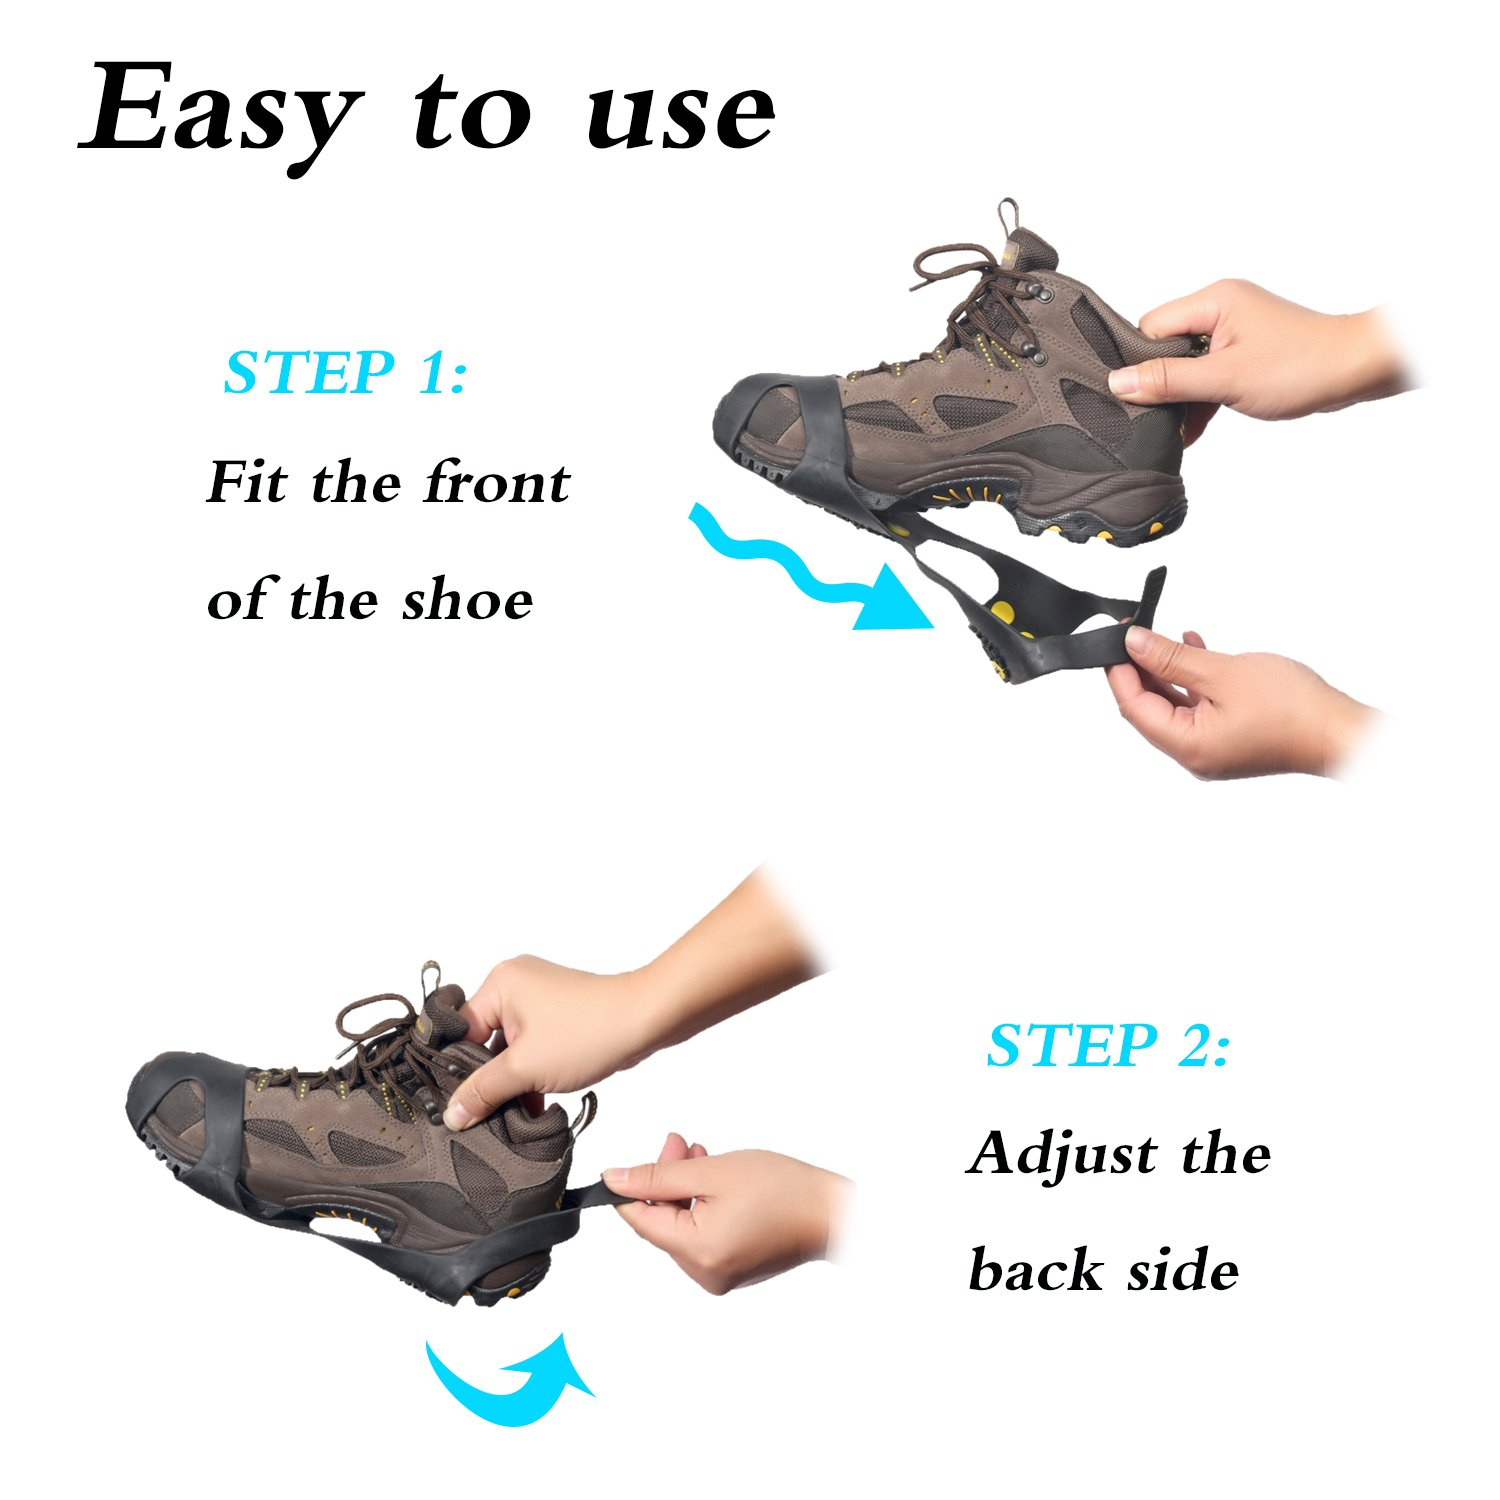 Gpeng Ice Grips Traction Cleats Ice Cleat Snow Grippers Non-Slip Over Shoe//Boot Rubber Spikes Crampons Anti Slip Durbale 10 Steel Studs Crampons Slip-on Stretch Footwear